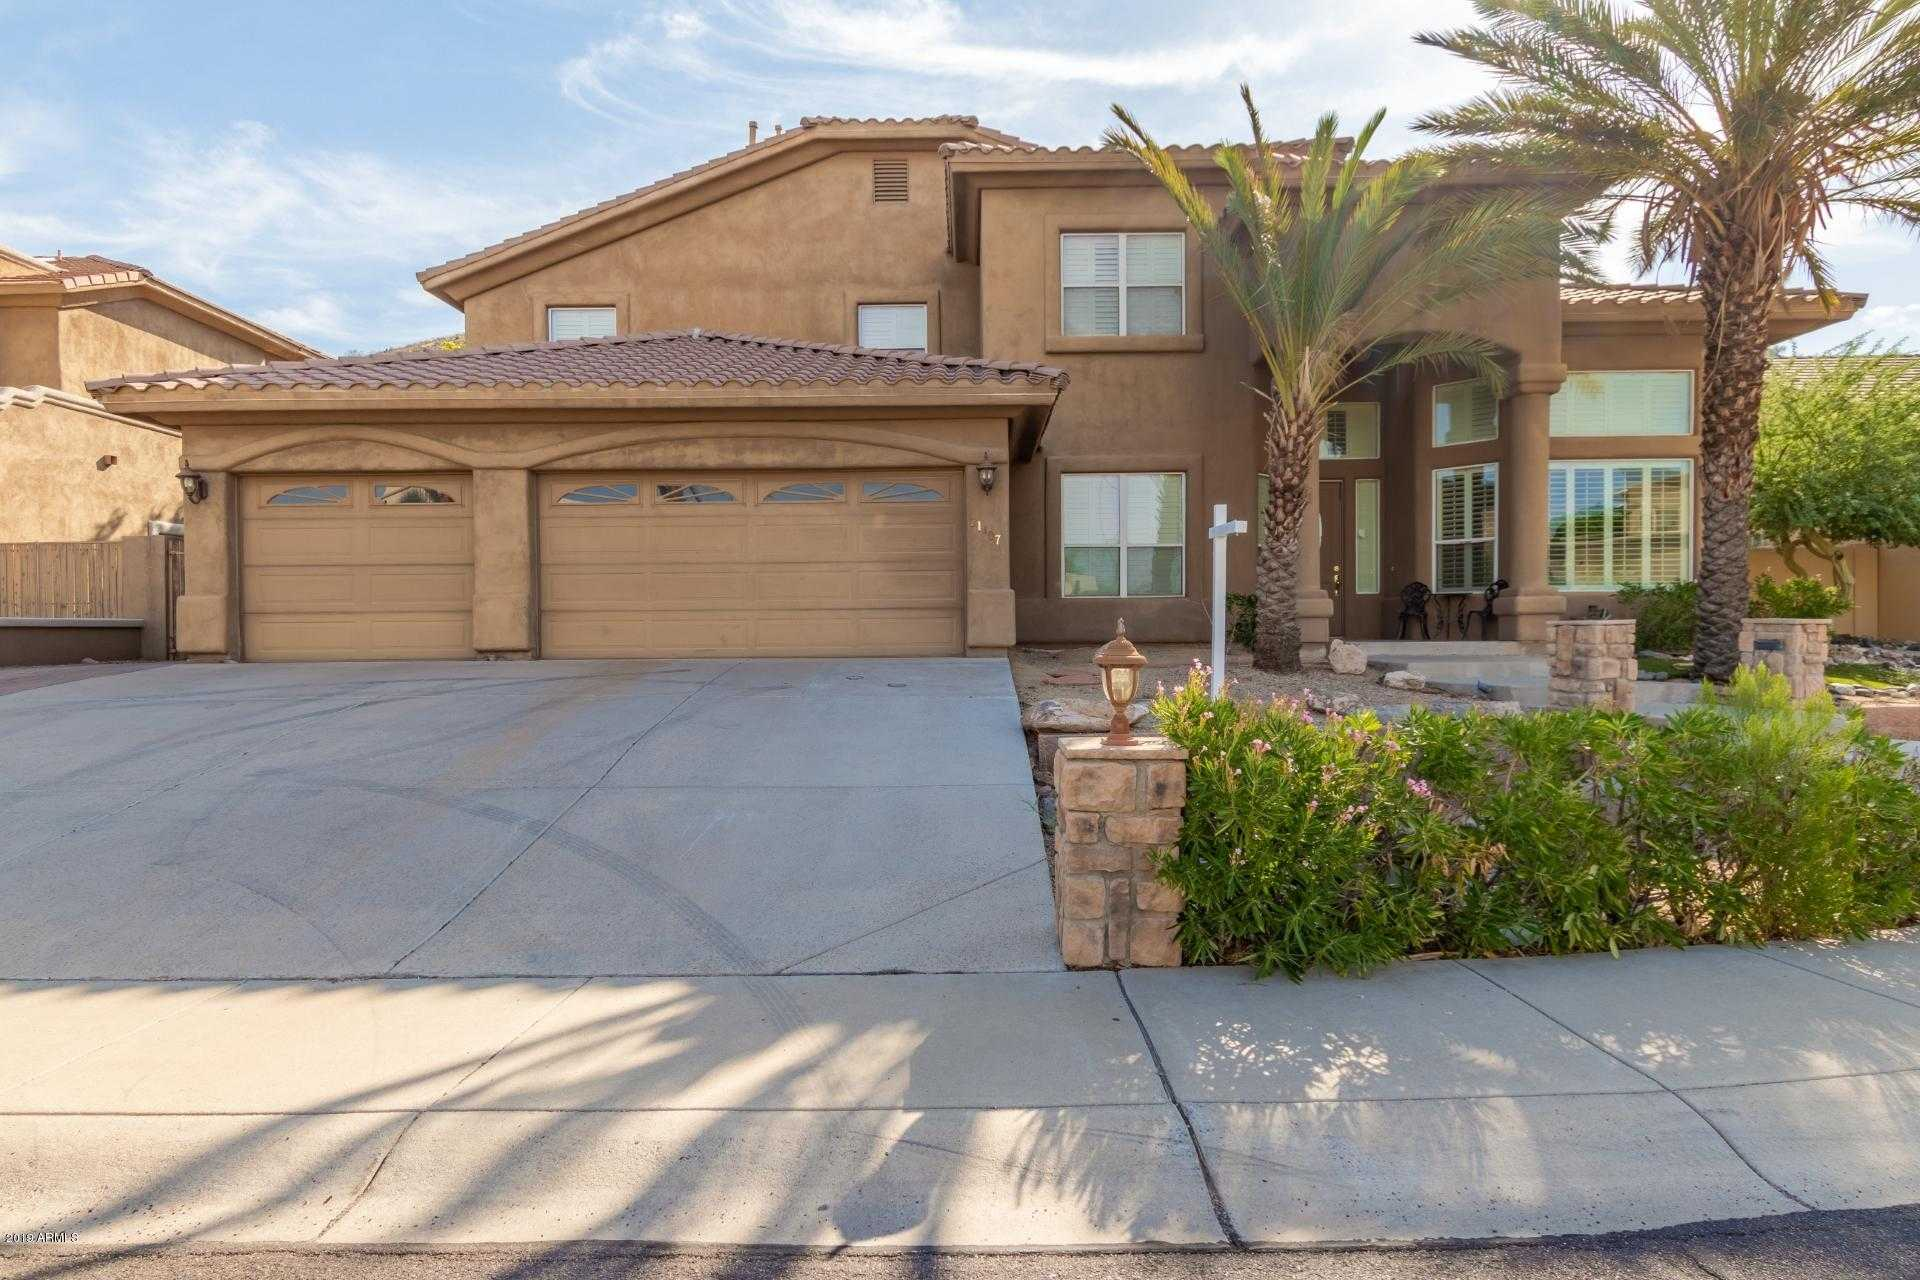 $595,000 - 5Br/3Ba - Home for Sale in Estates At Arrowhead Phase One B, Glendale